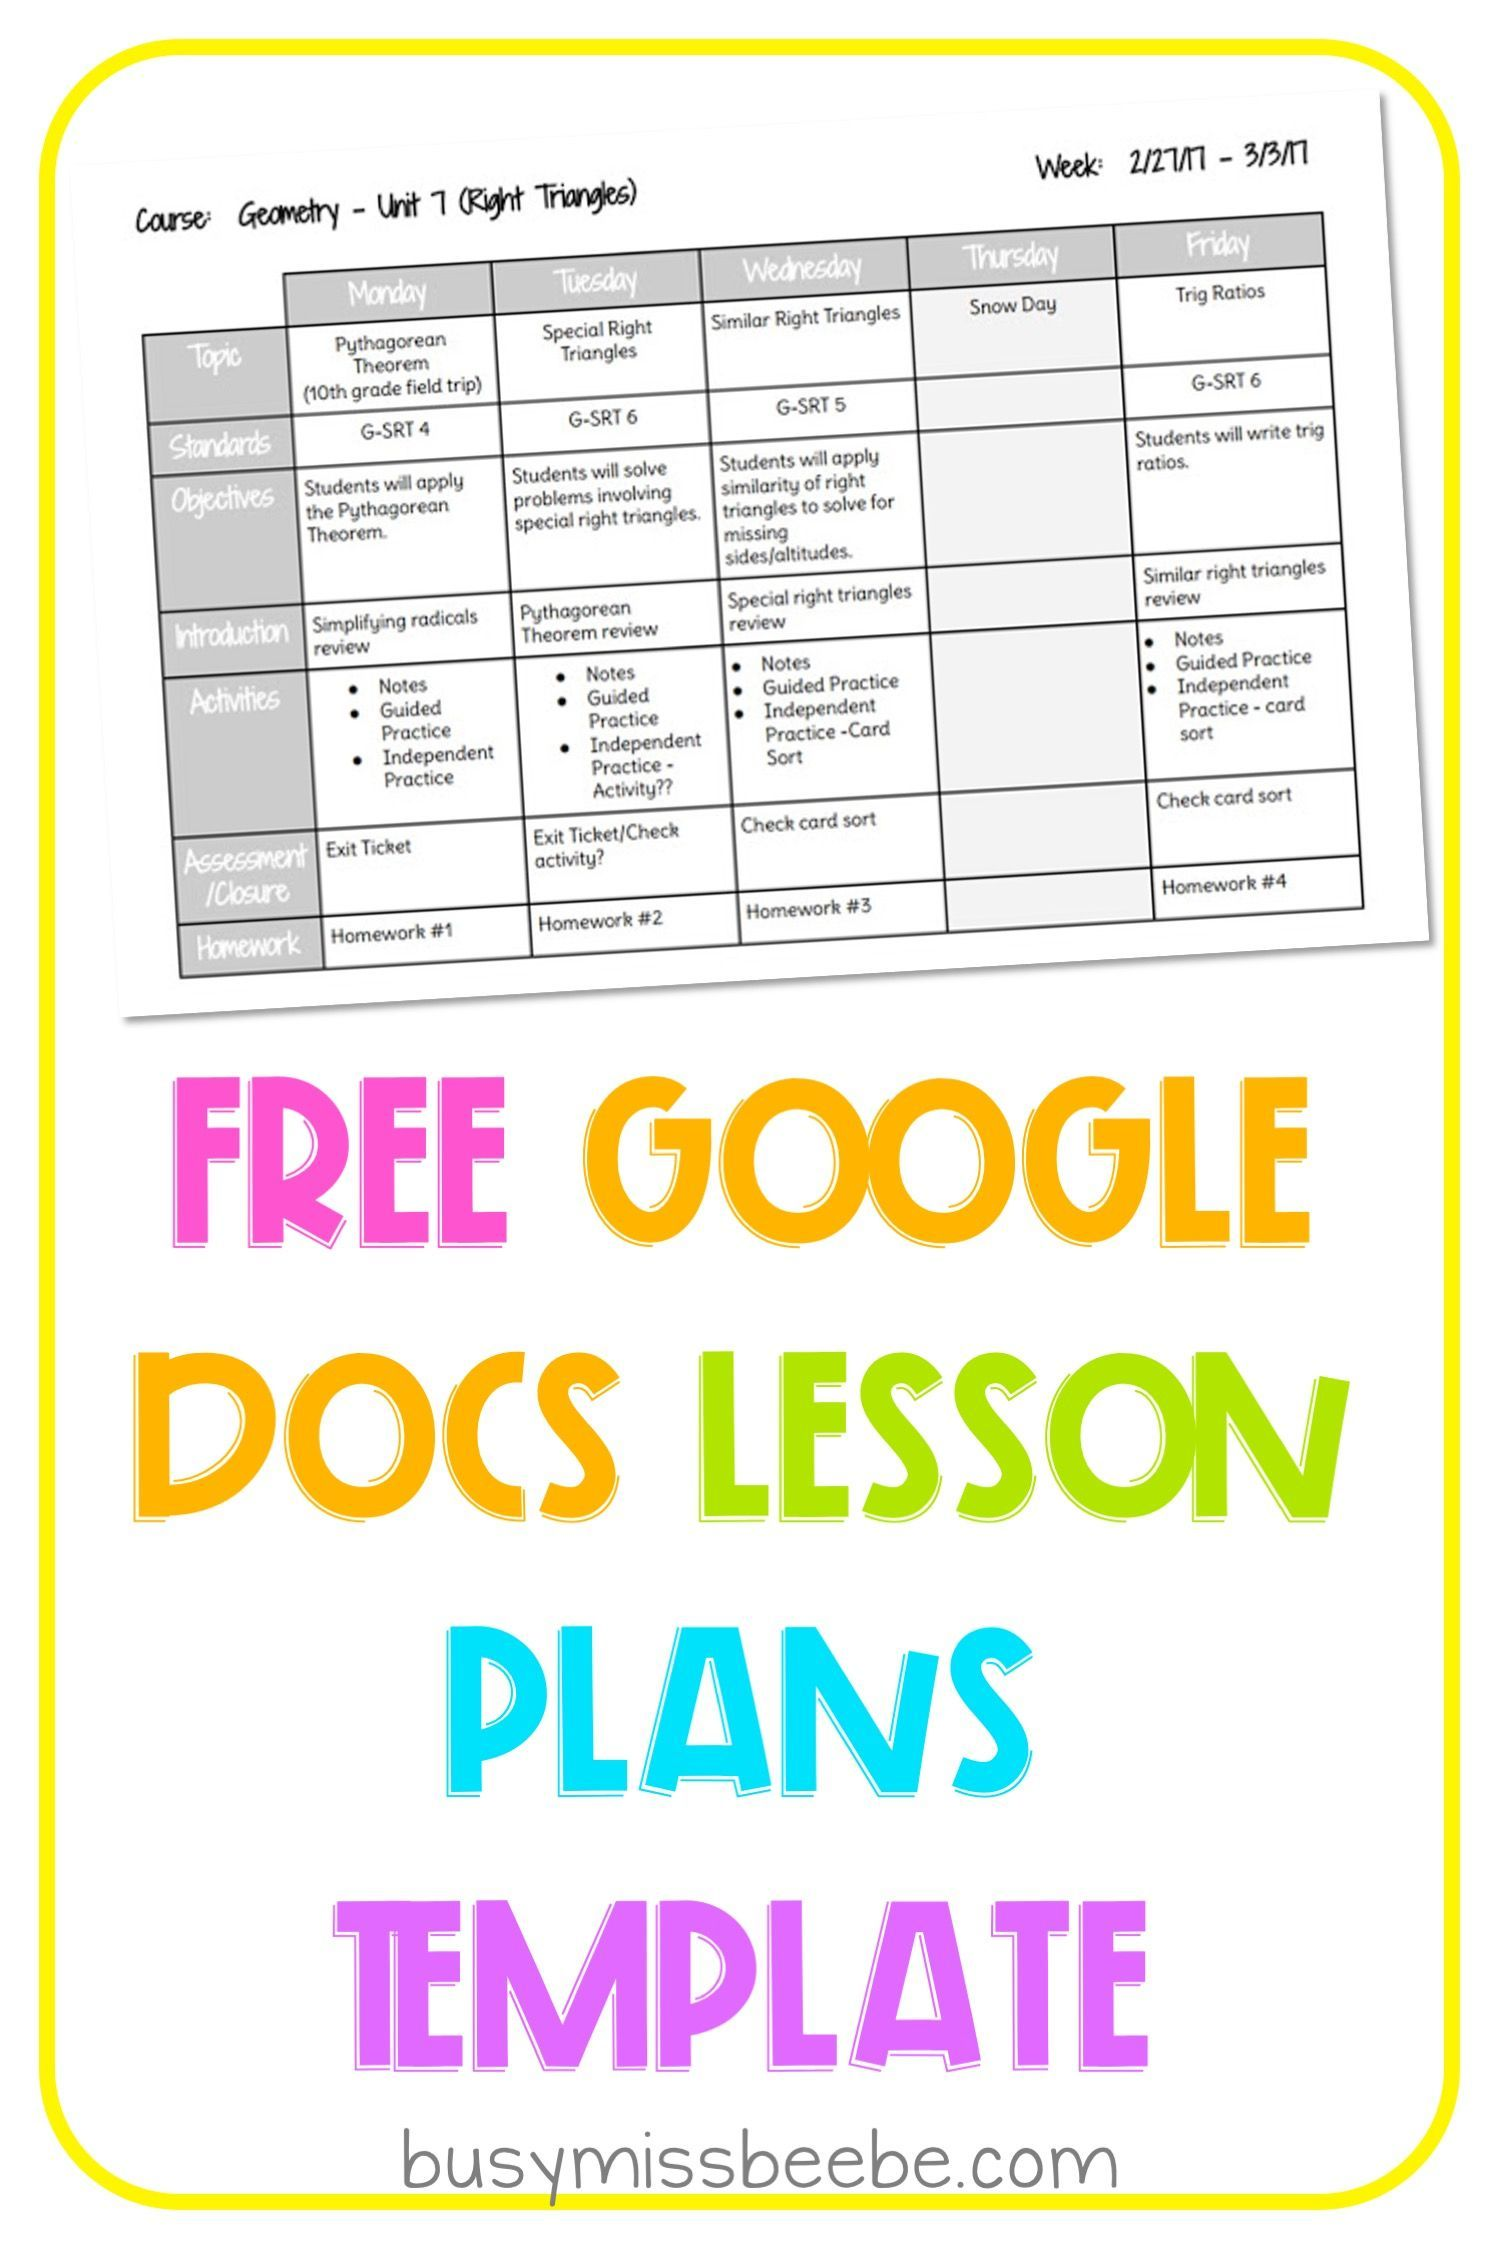 Free Lesson Plan Template Lesson Plan Template Free Kindergarten Lesson Plans Template Middle School Lesson Plans Weekly lesson plan template elementary